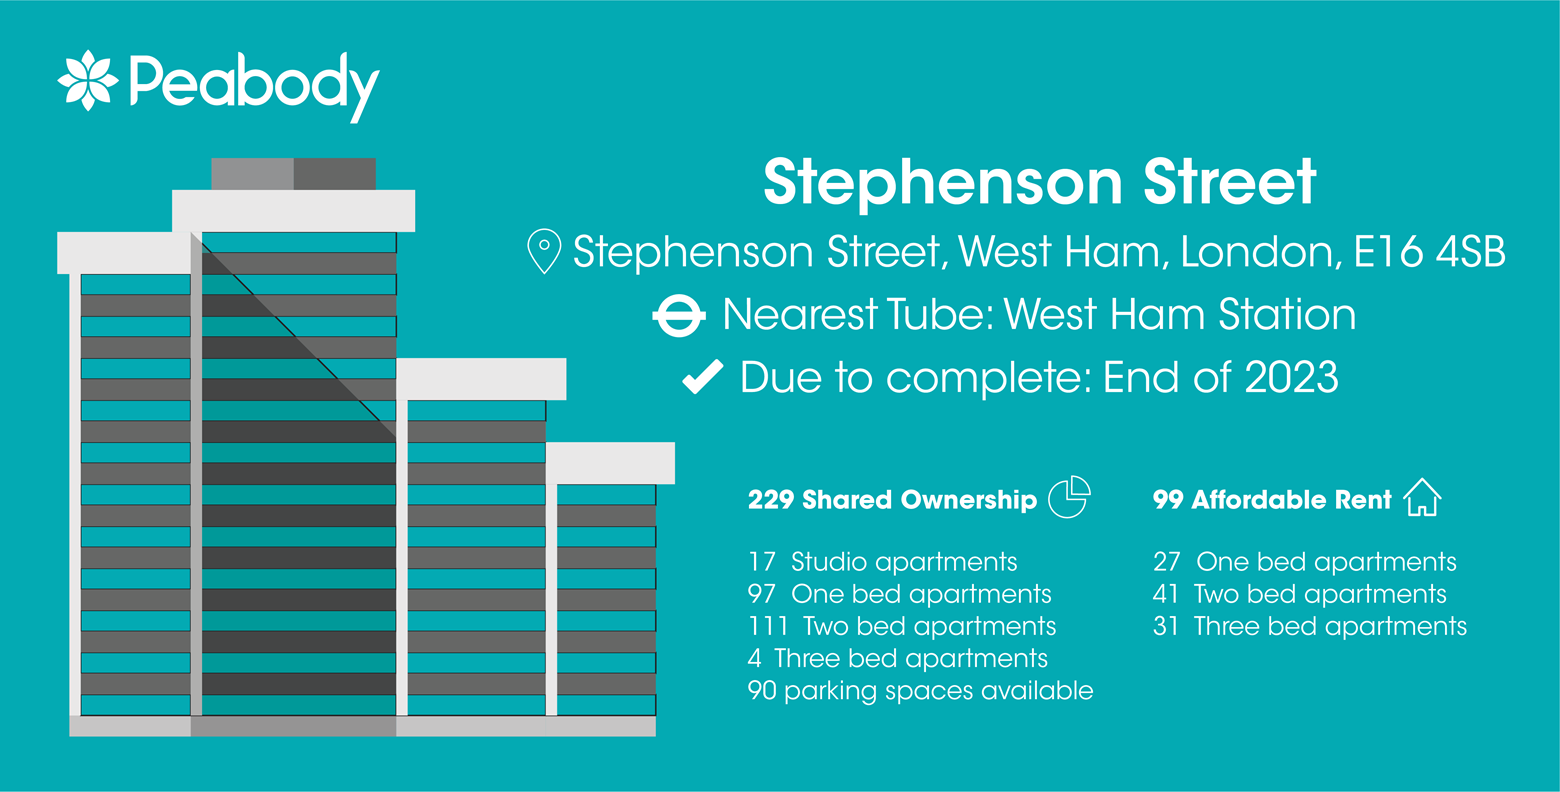 Snapshot of Stephenson Street